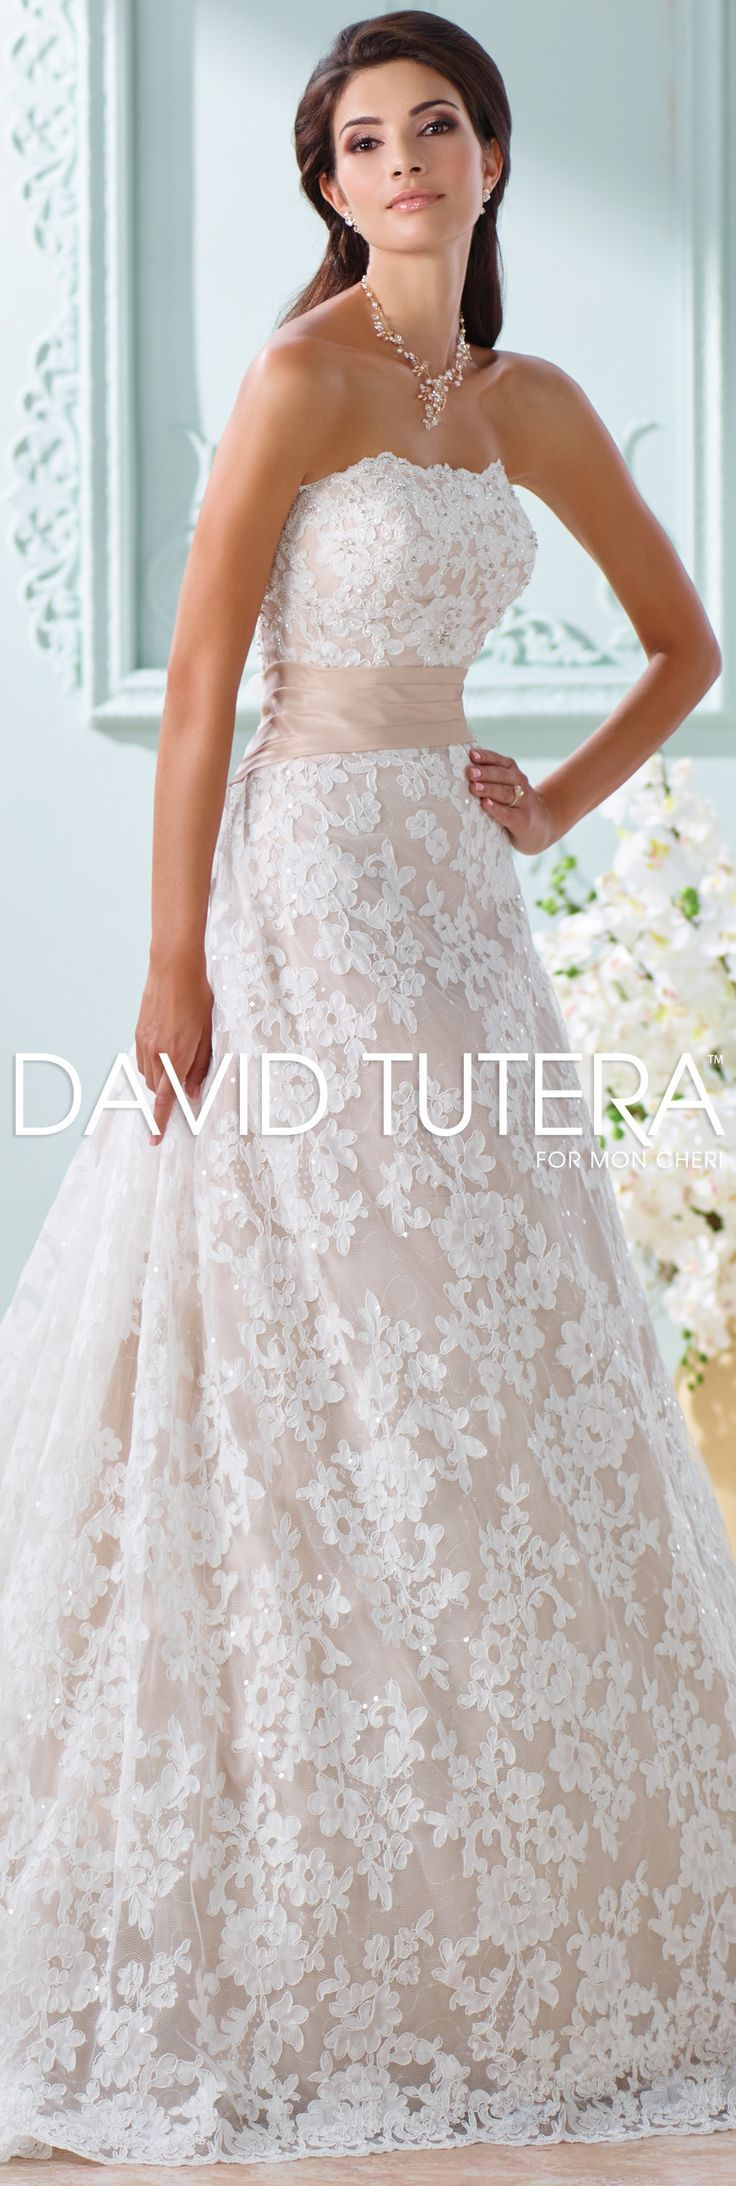 Nice The David Tutera for Mon Cheri Spring Wedding Gown Collection Style No